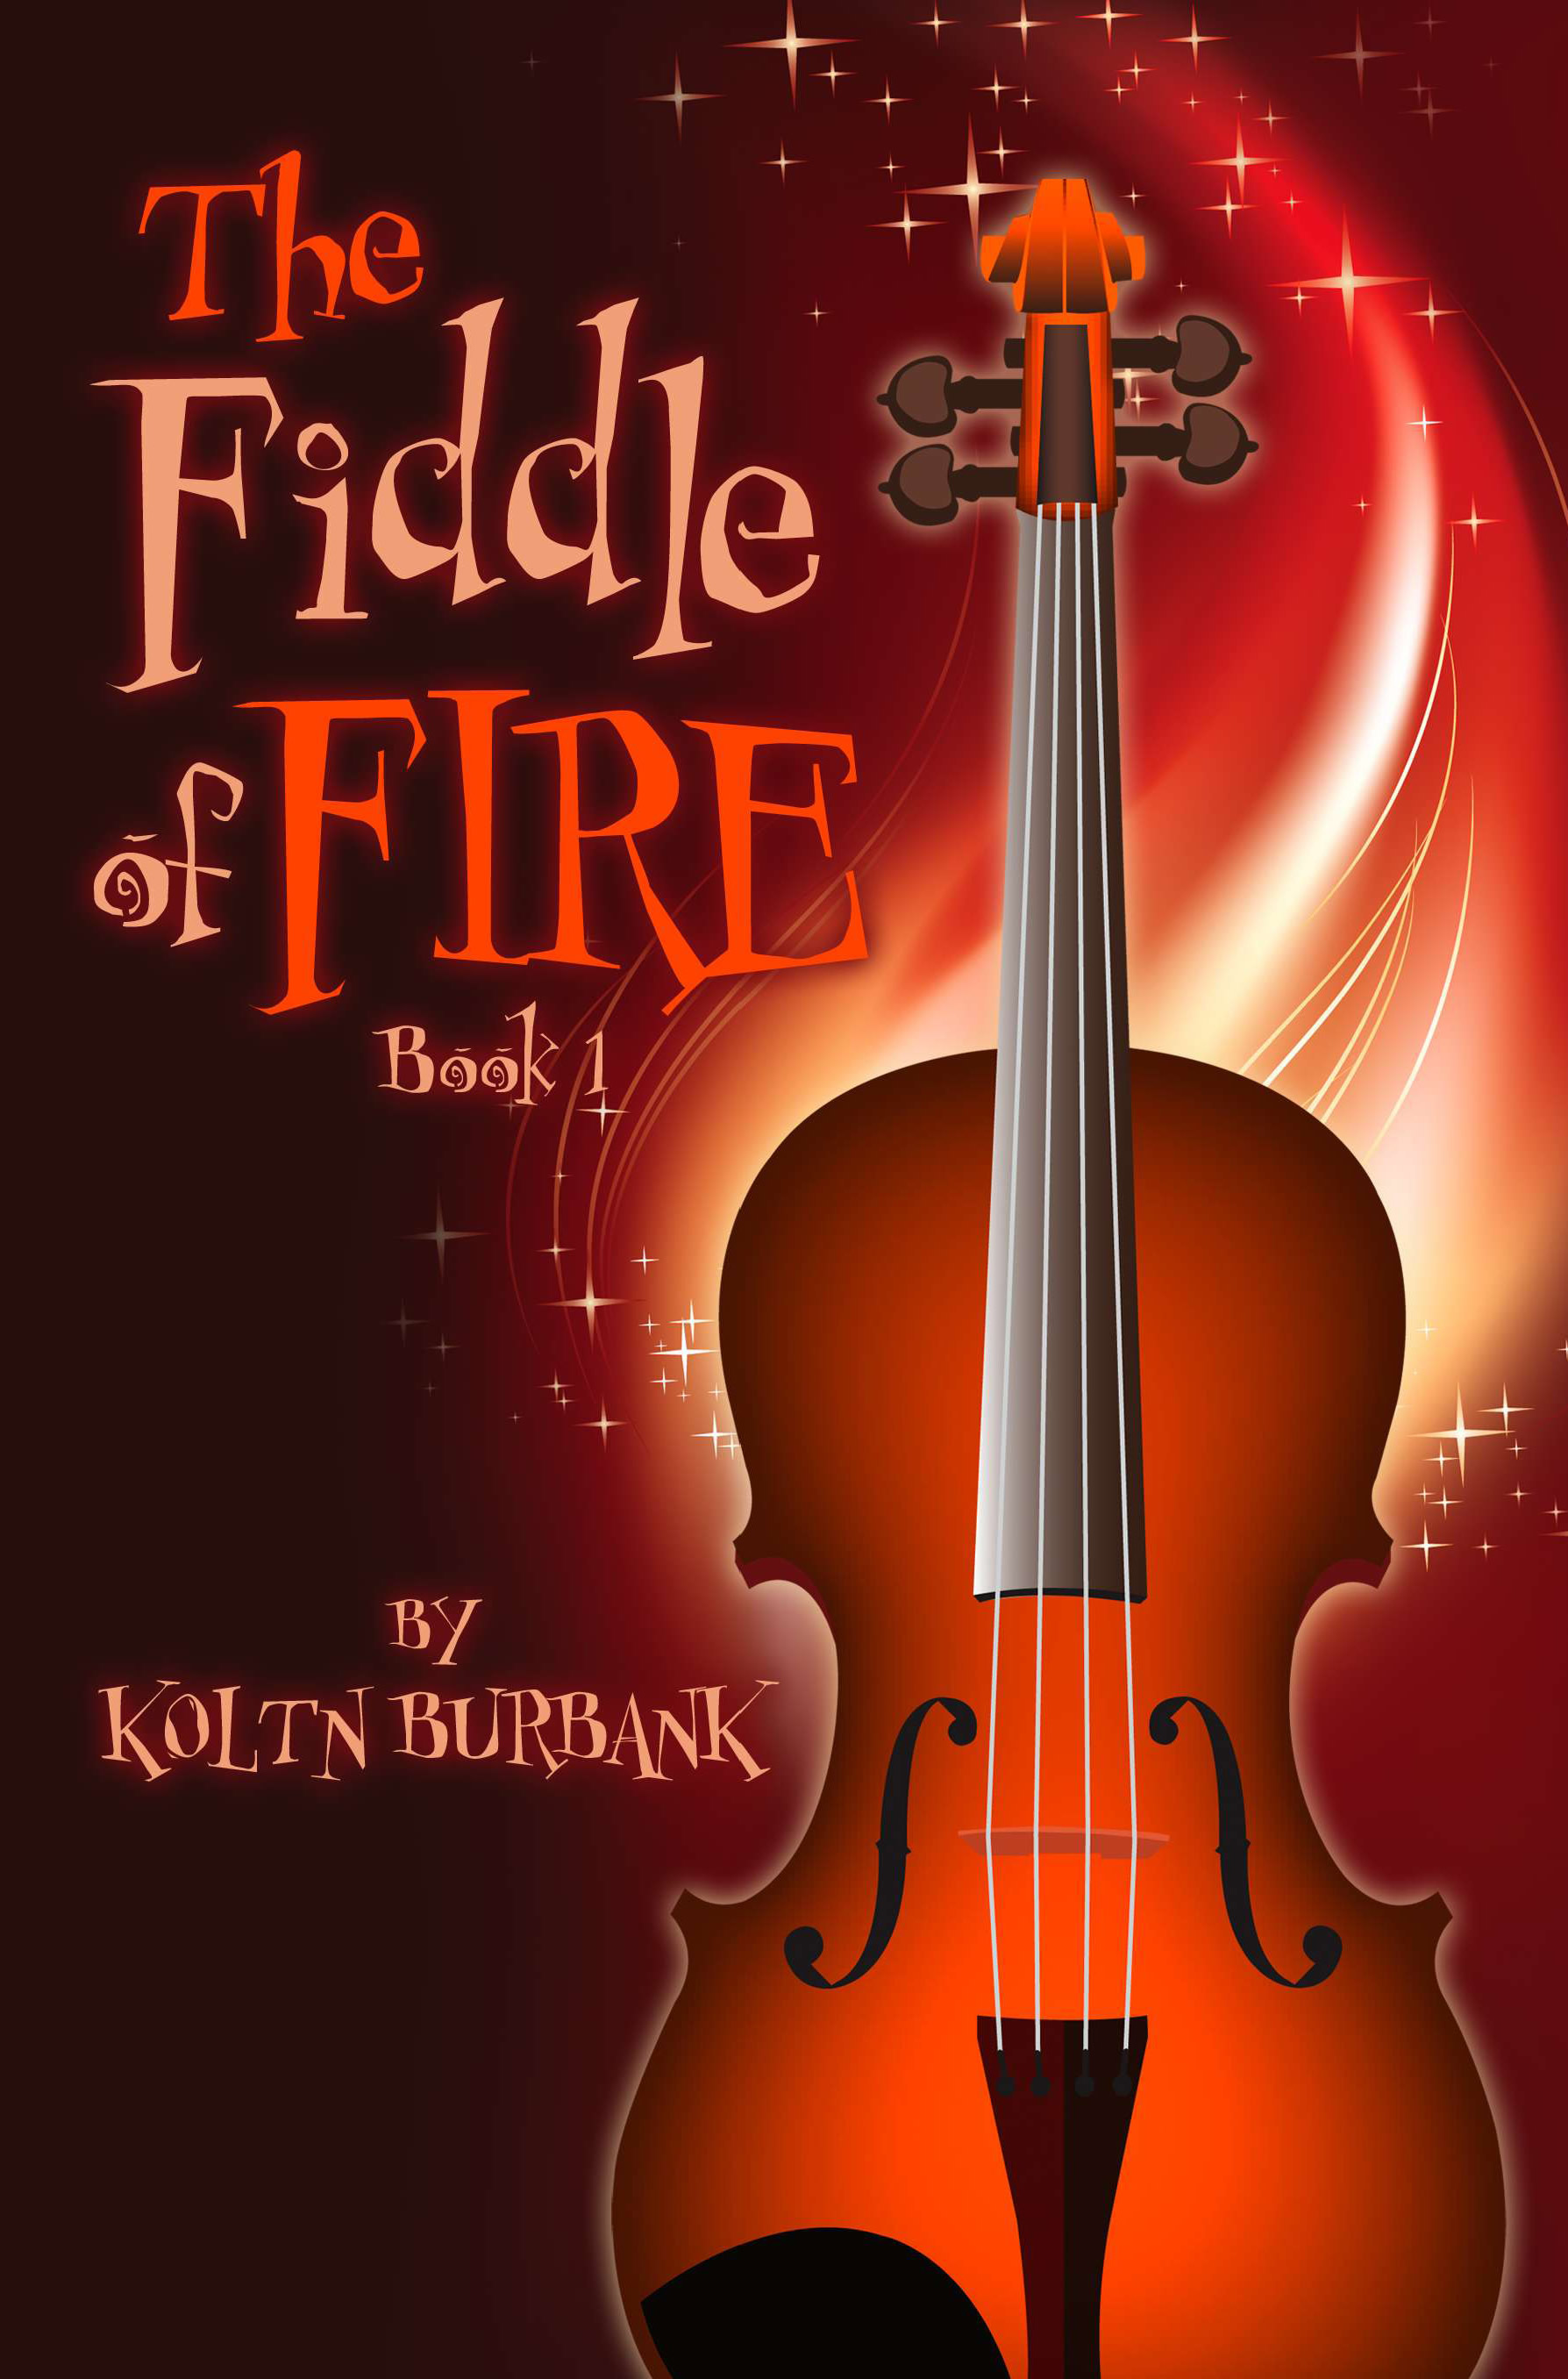 The Fiddle of Fire, Book One